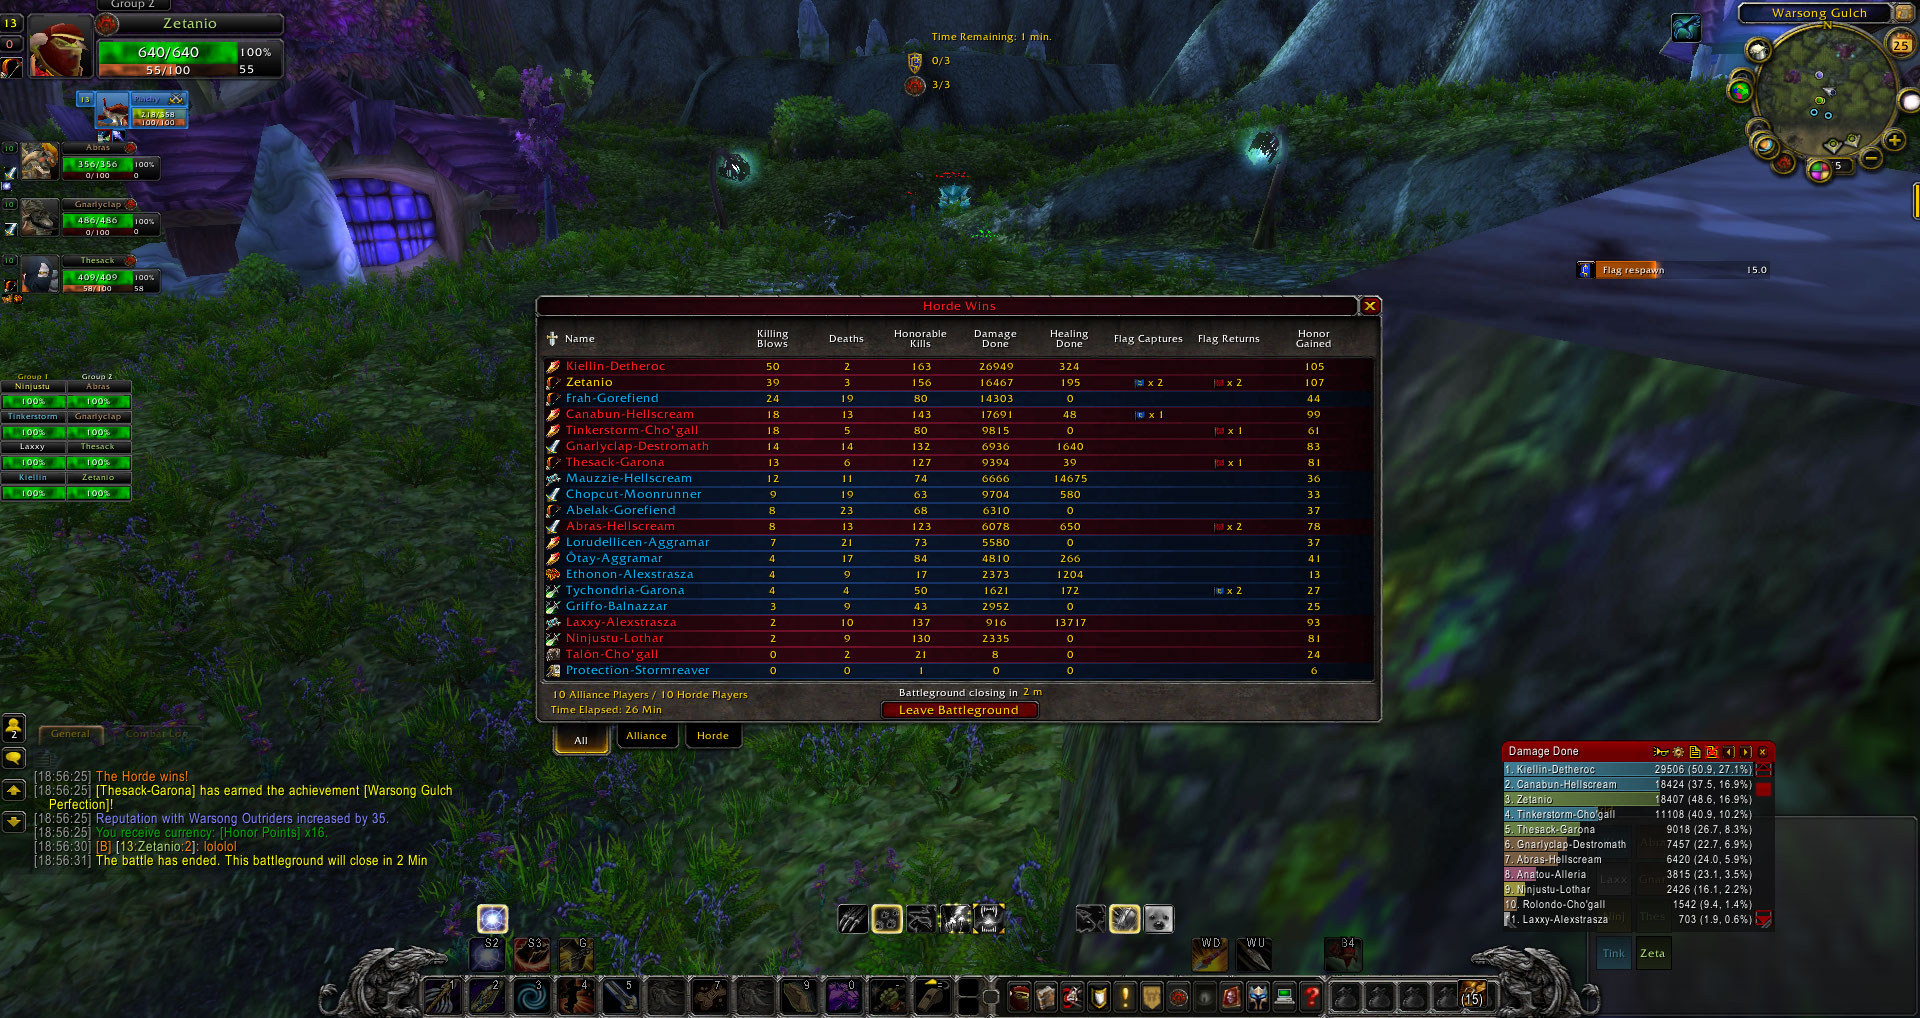 zetanio games this first continue mount reputation grind completed that today dropped when pairs acquisition achievement hopped about forgot accomplishment thread completely over bought picked recent different drake missing netherwing